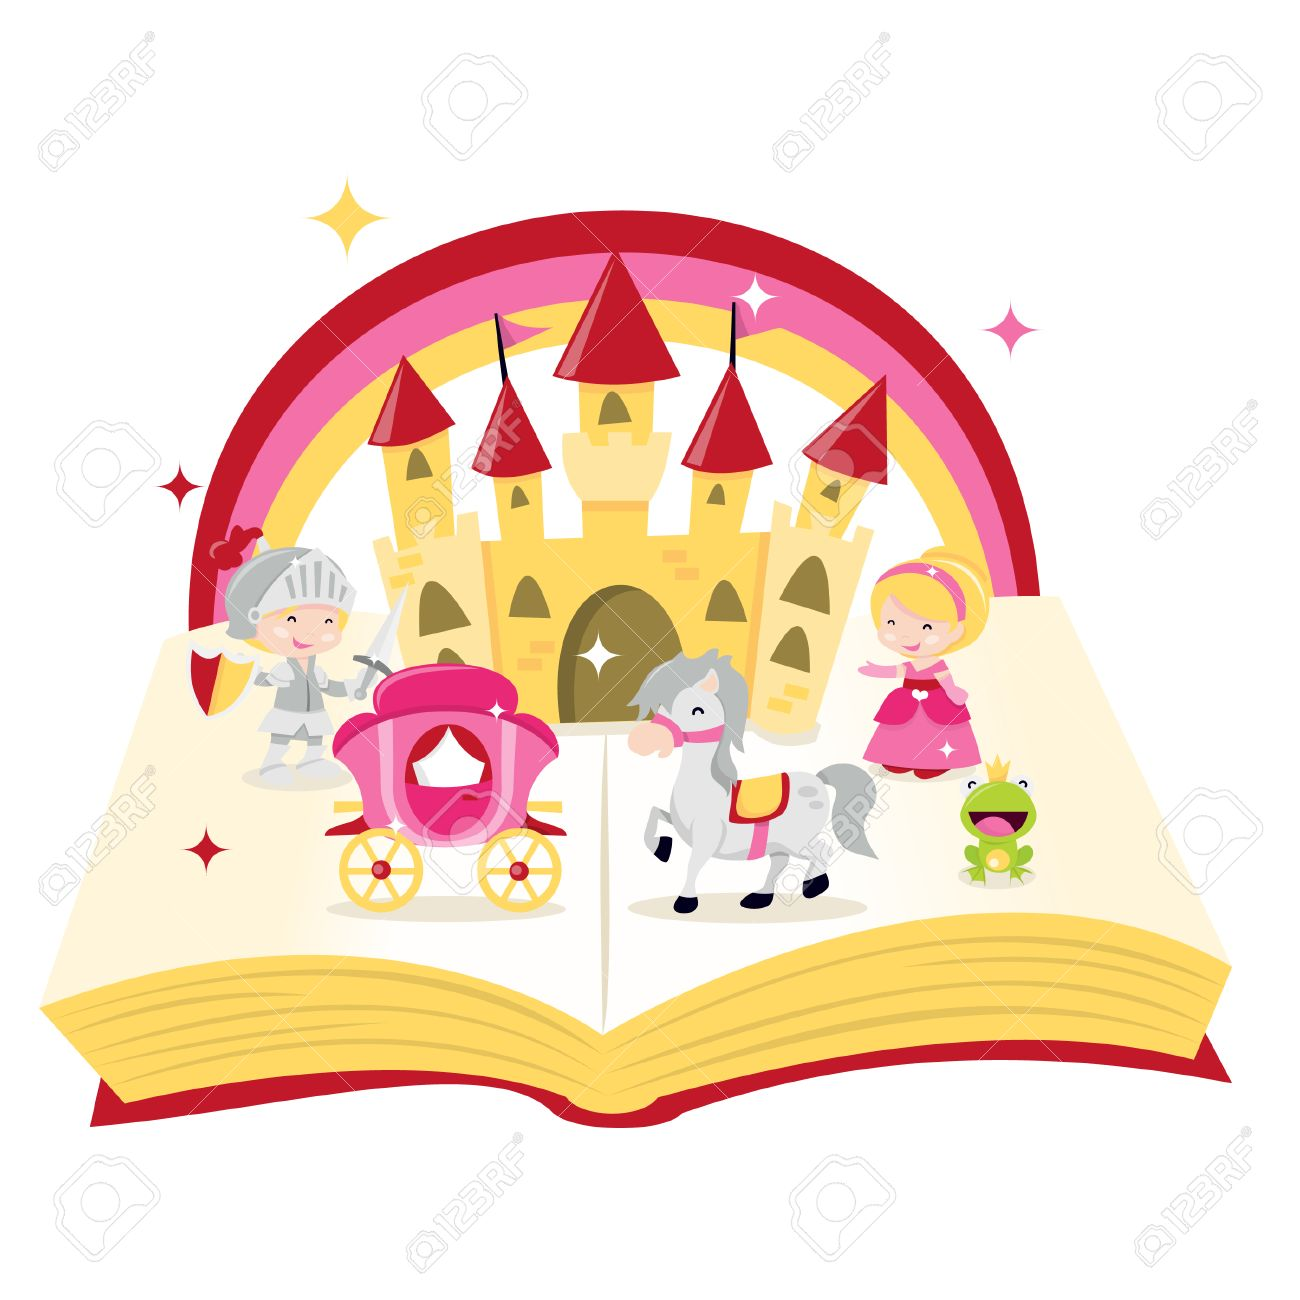 A cartoon illustration of fairy tale story book filled with castle,